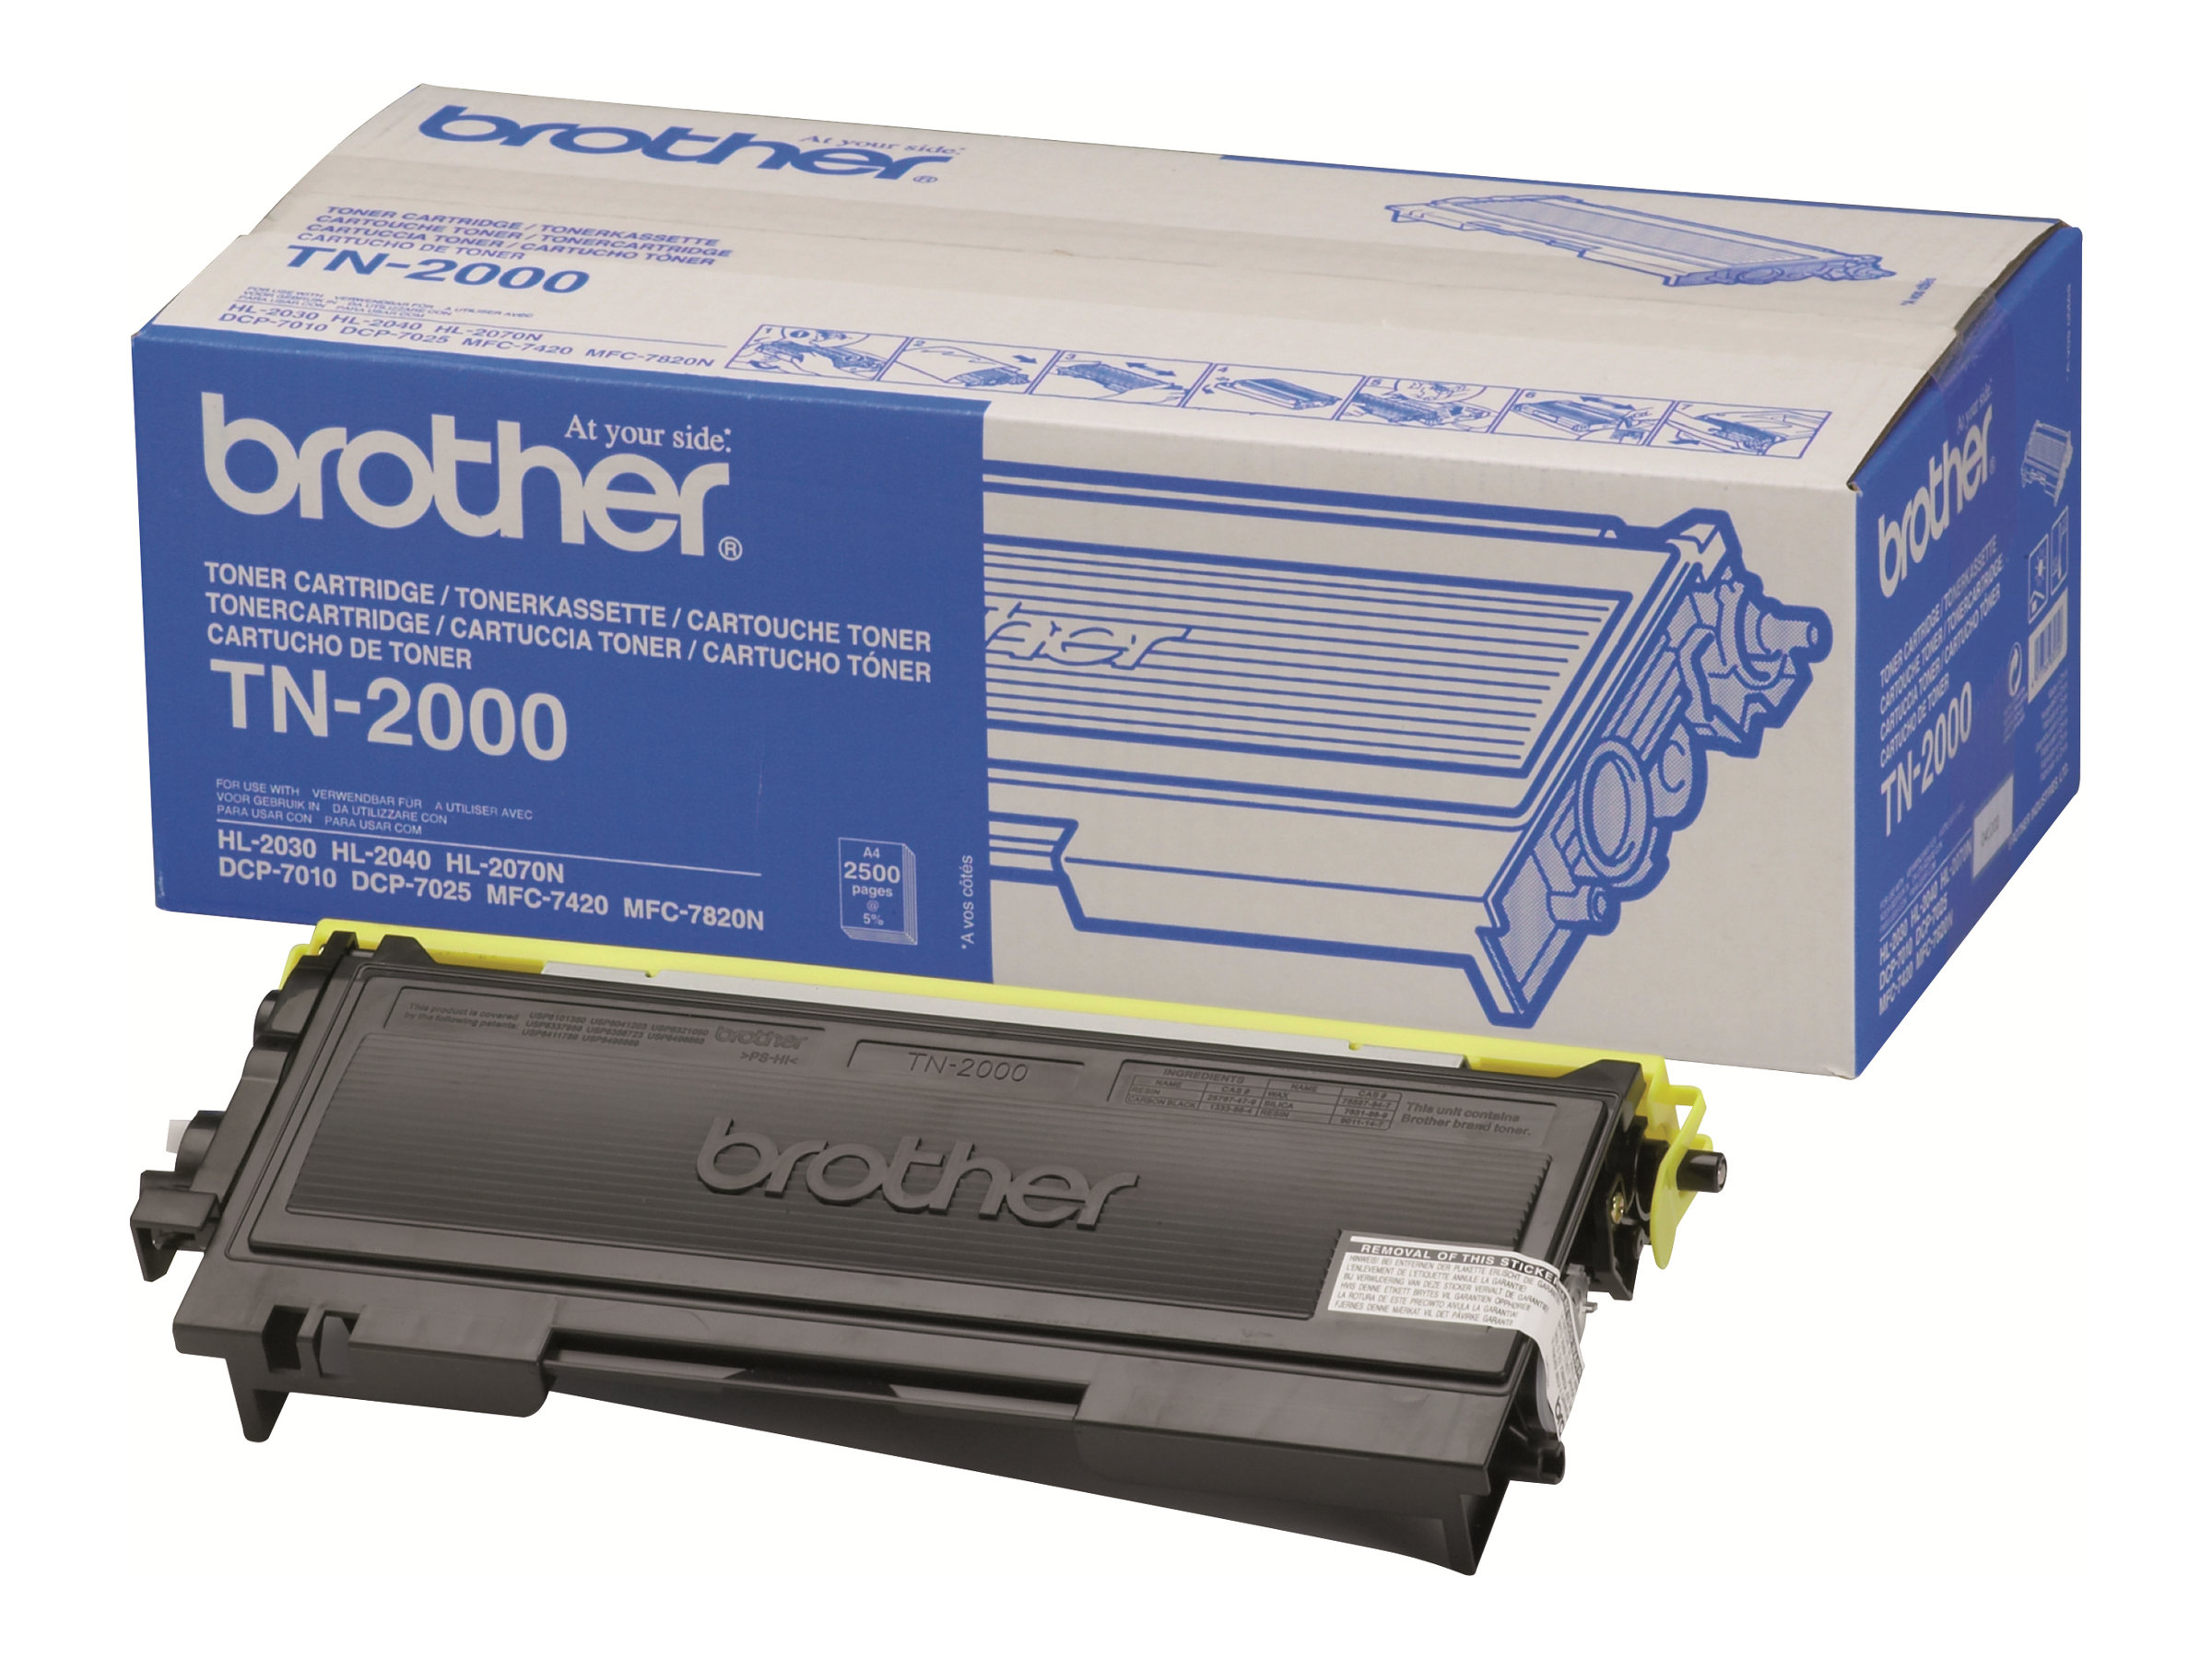 Brother TN2000 - Schwarz - Original - Tonerpatrone - für Brother DCP-7010, DCP-7010L, DCP-7025, MFC-7225n, MFC-7420, MFC-7820N; FAX-2820, 2825